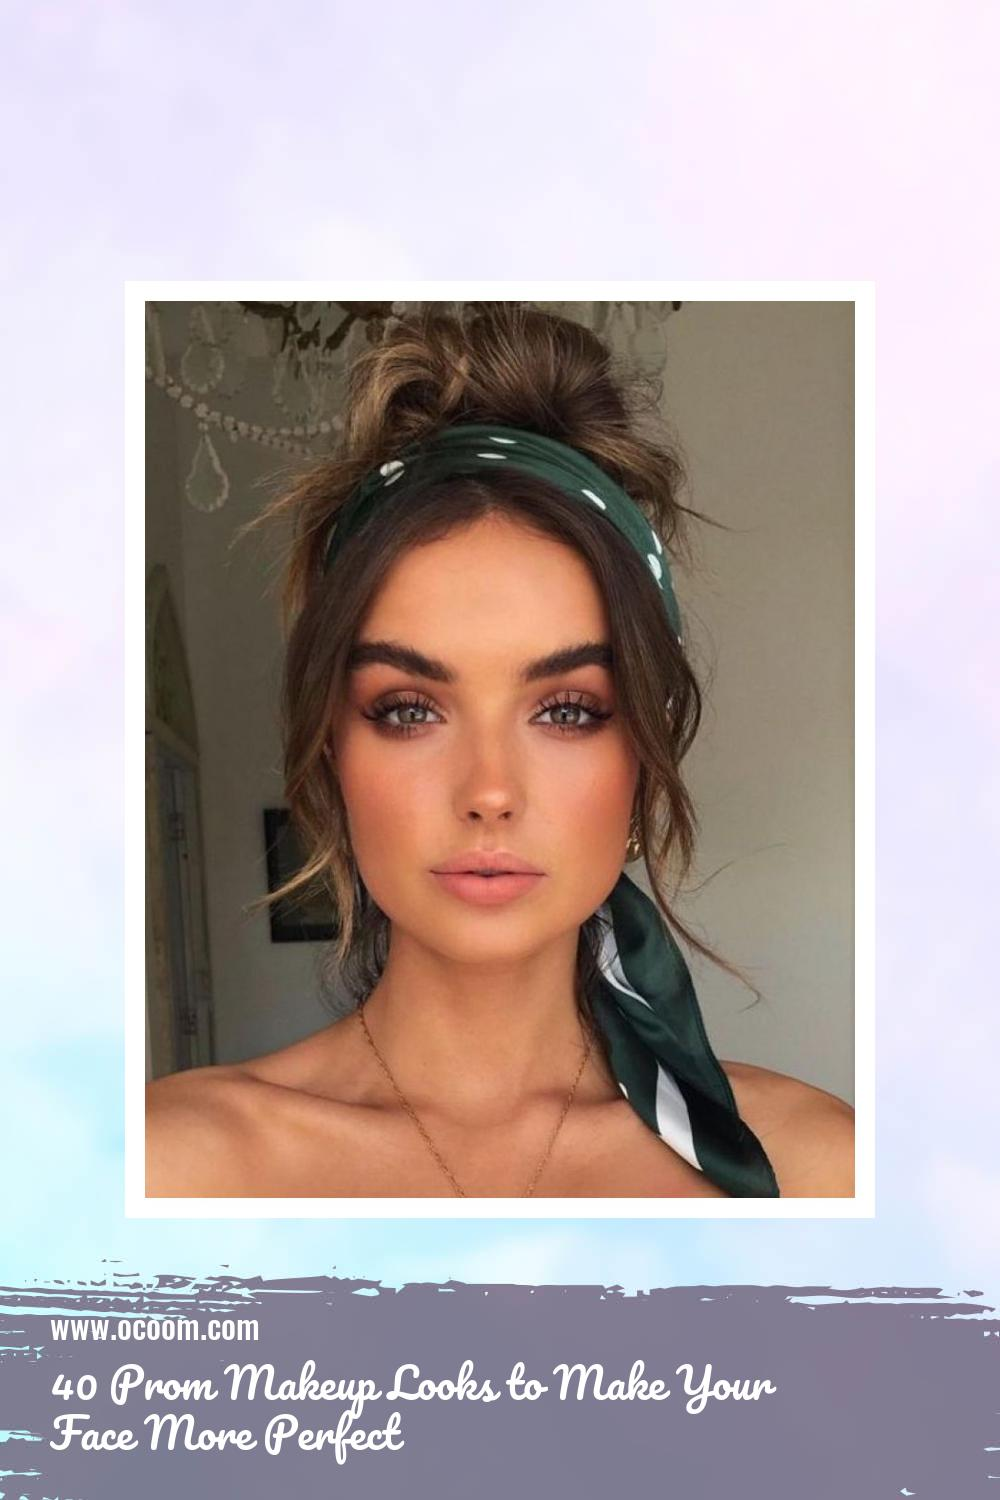 40 Prom Makeup Looks to Make Your Face More Perfect 16